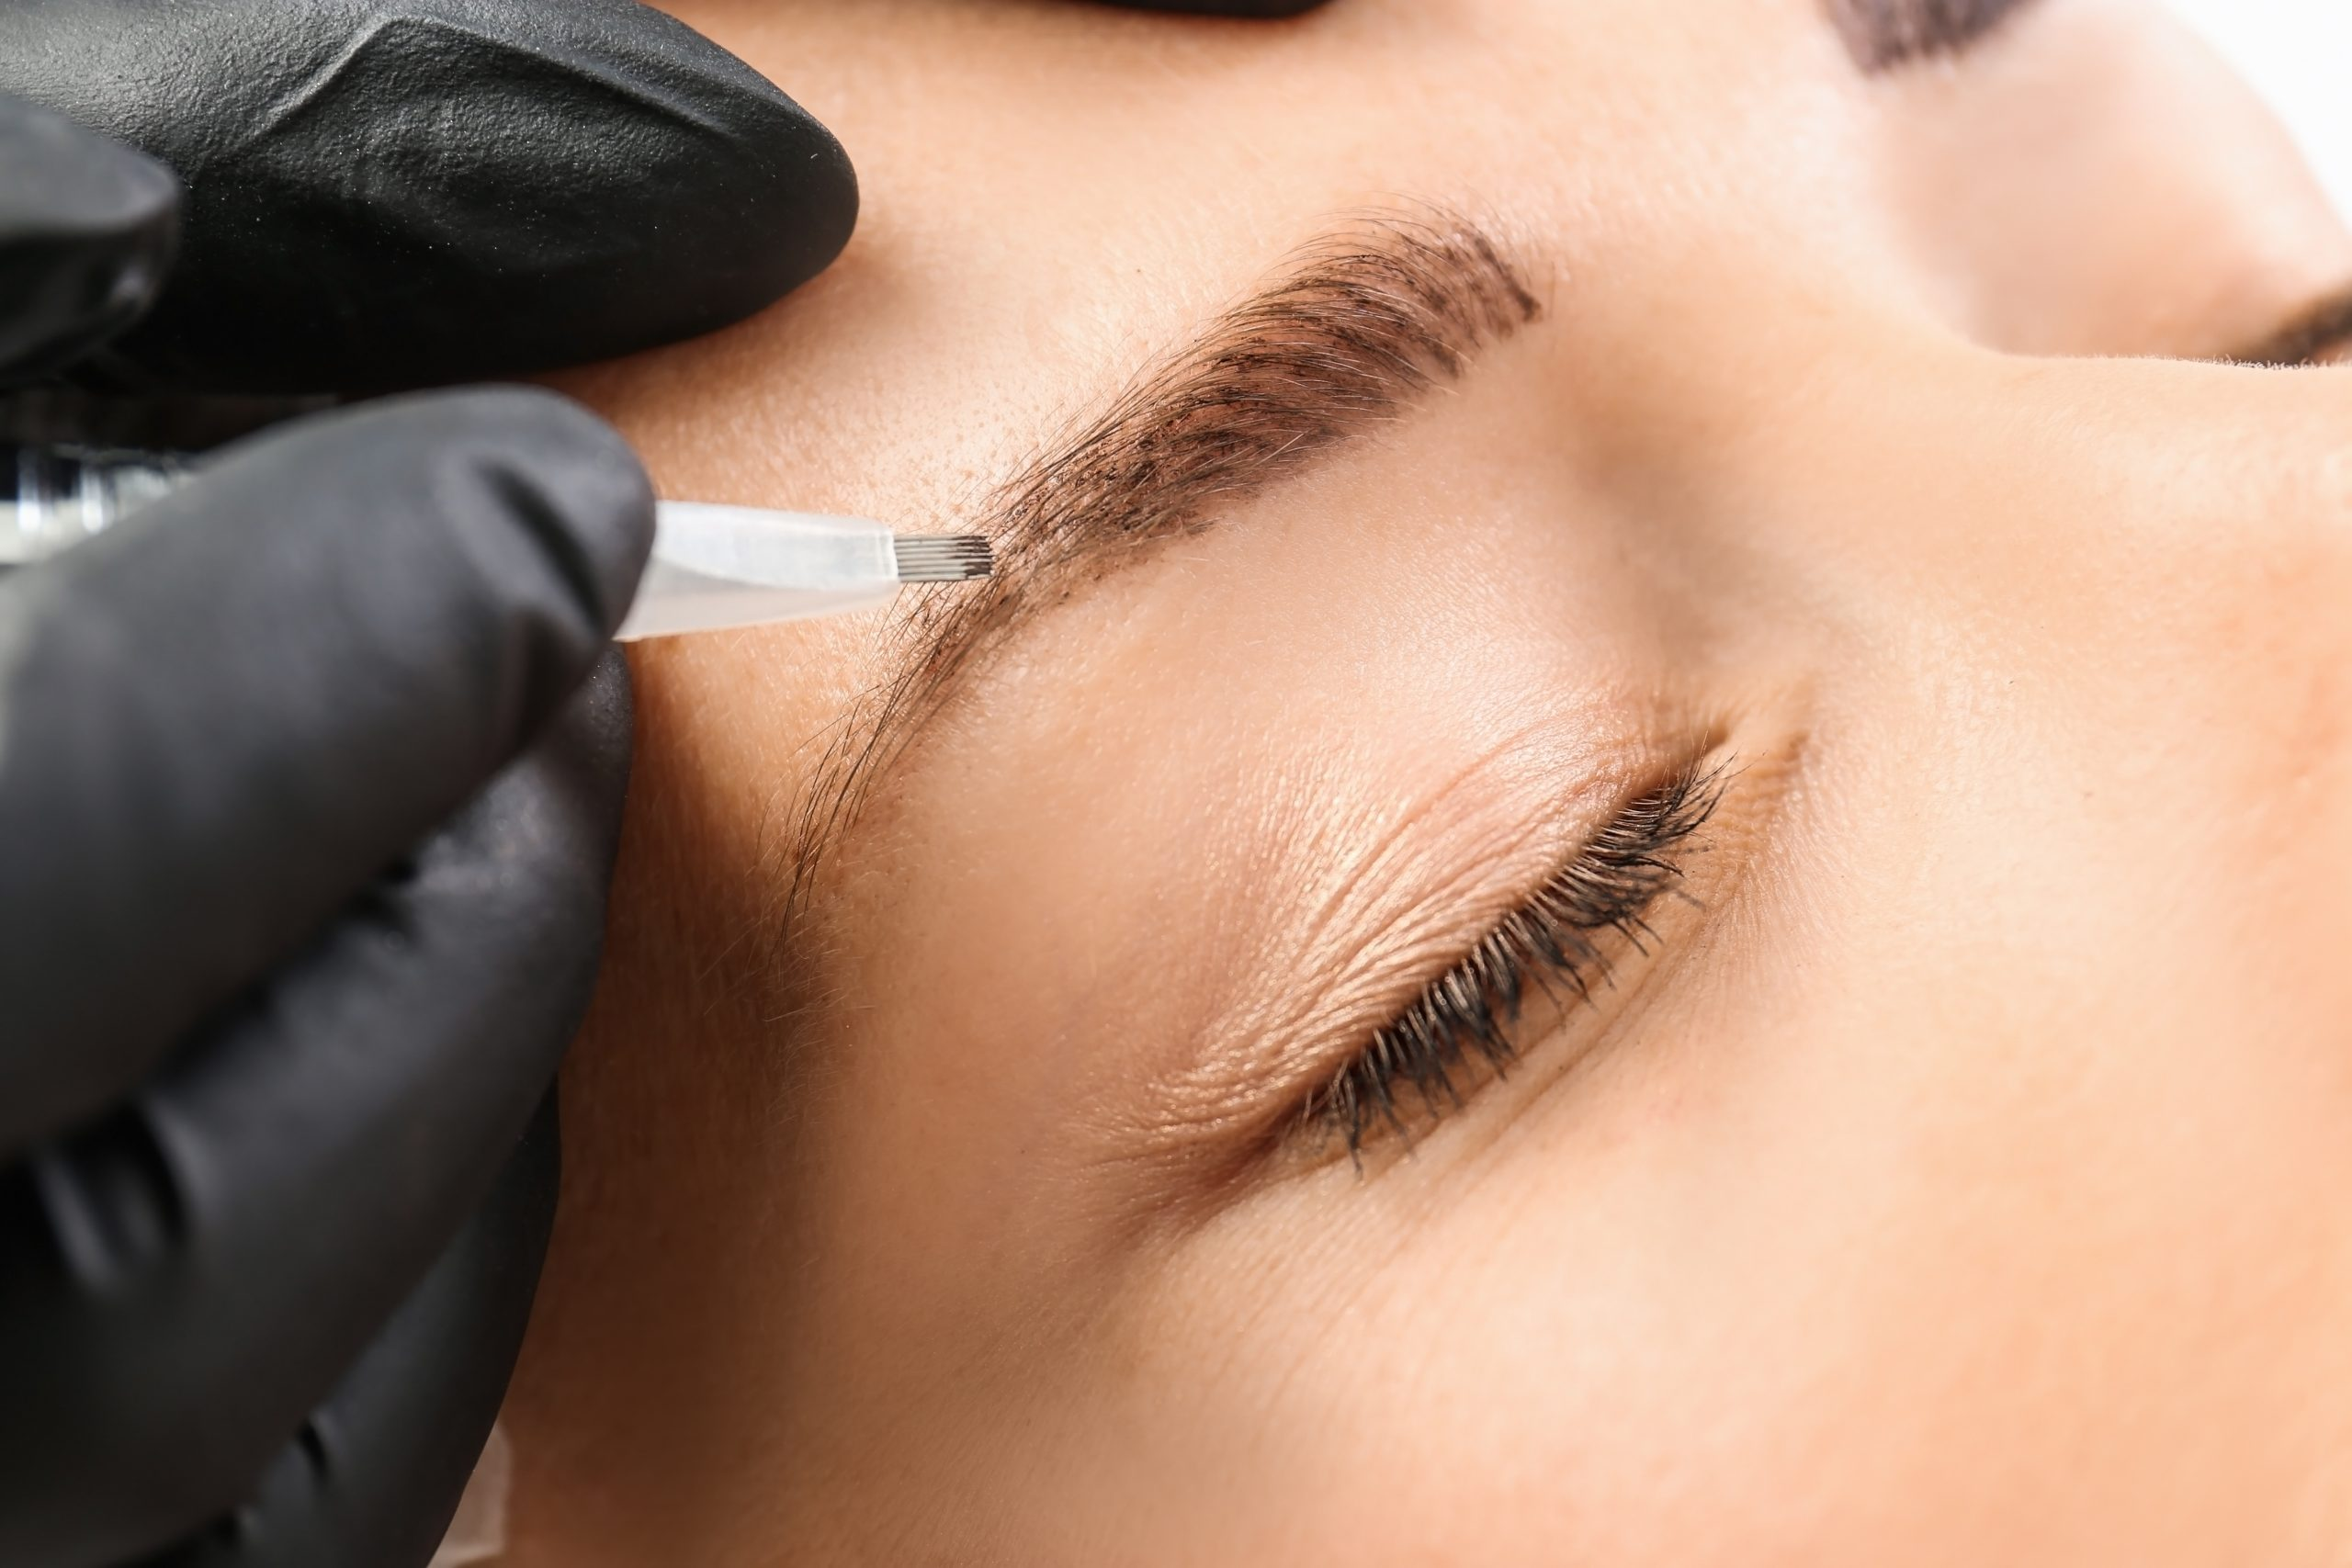 Is Microblading Different from Eyebrow Tattooing?